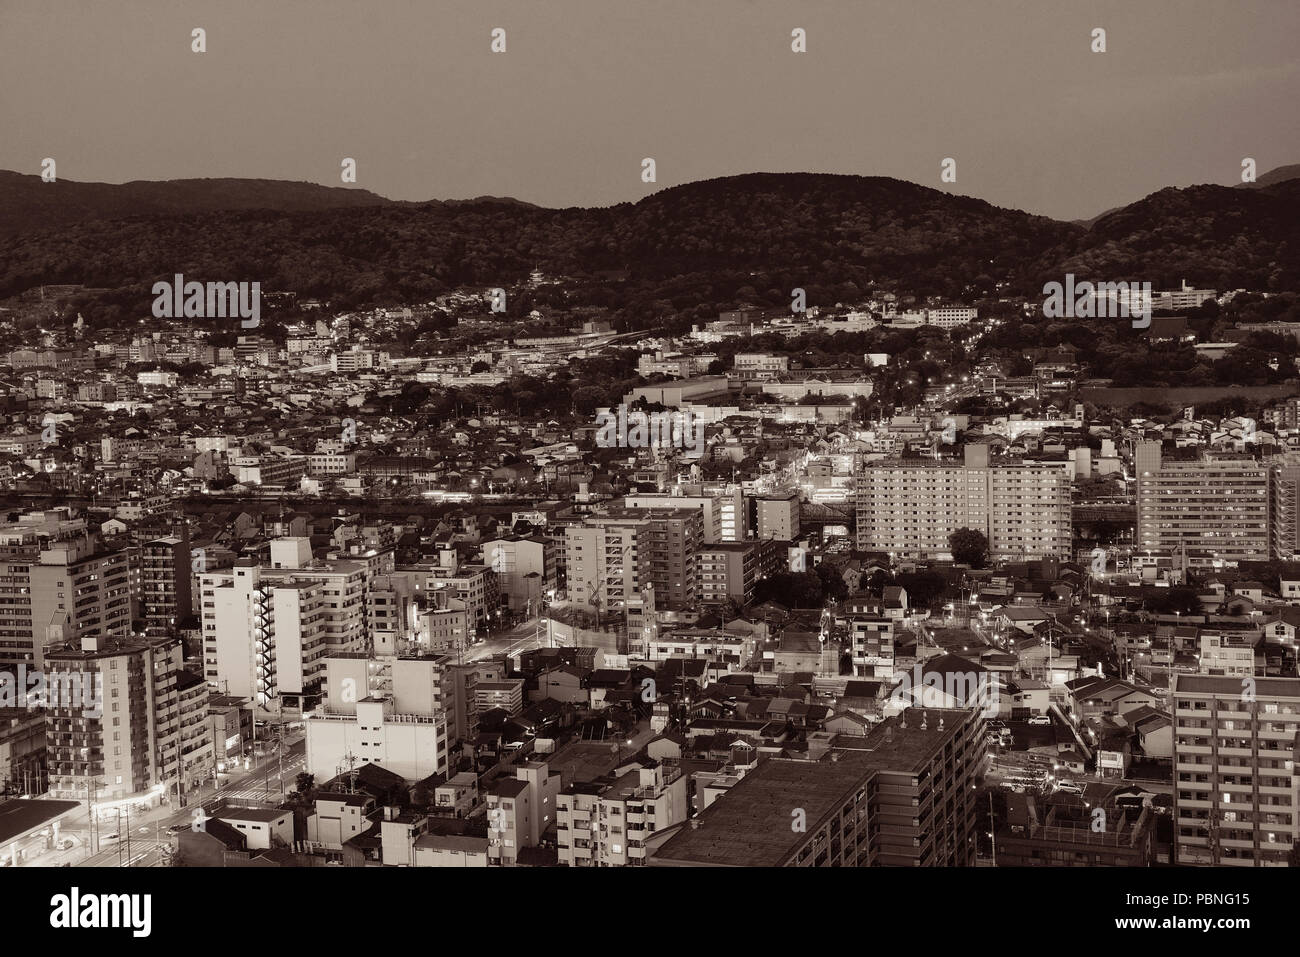 Kyoto city rooftop view at night from above. Japan. Stock Photo